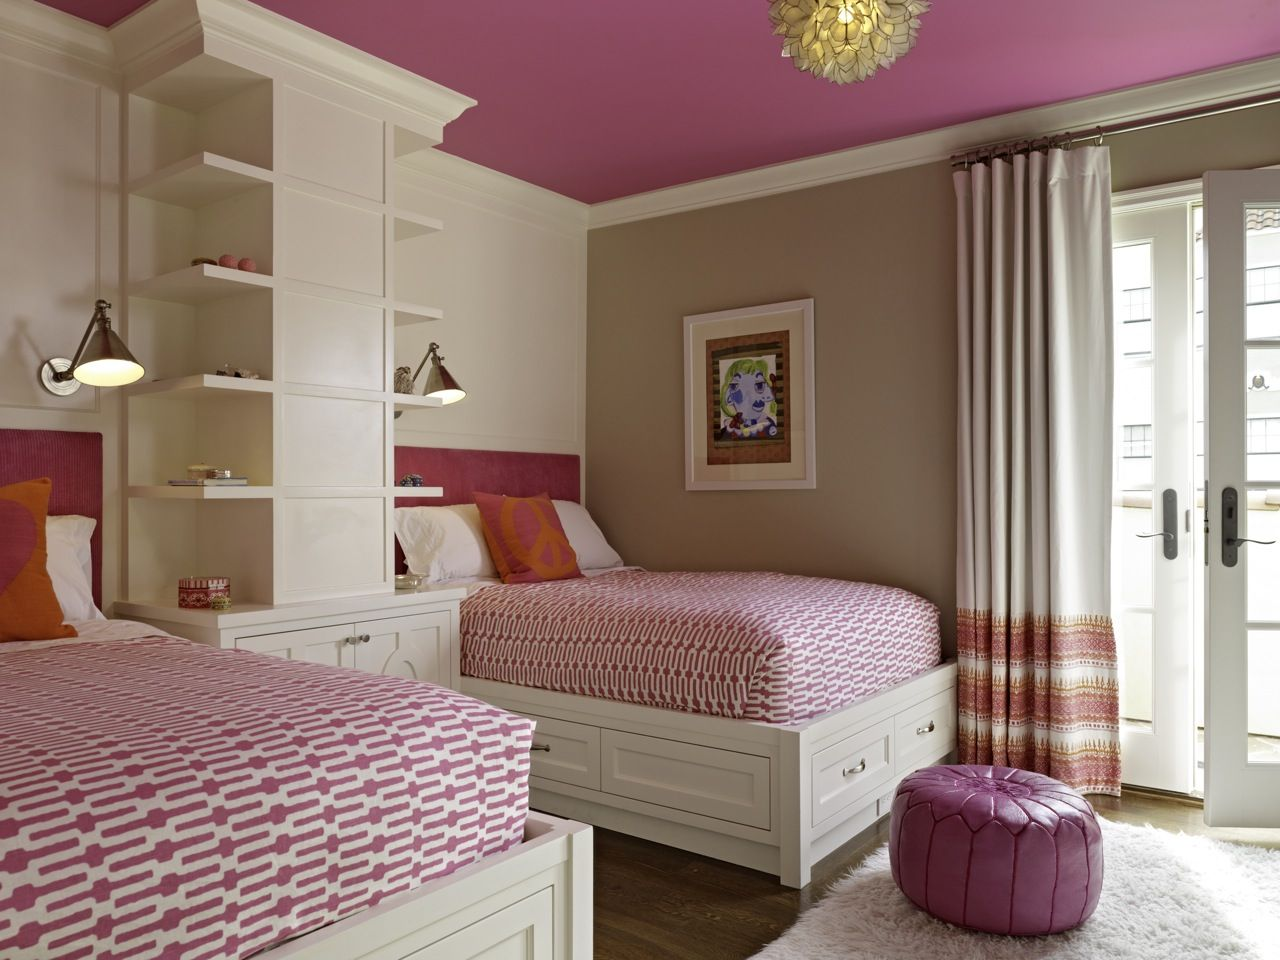 The best paint colors for a kidsu rooms sister room library